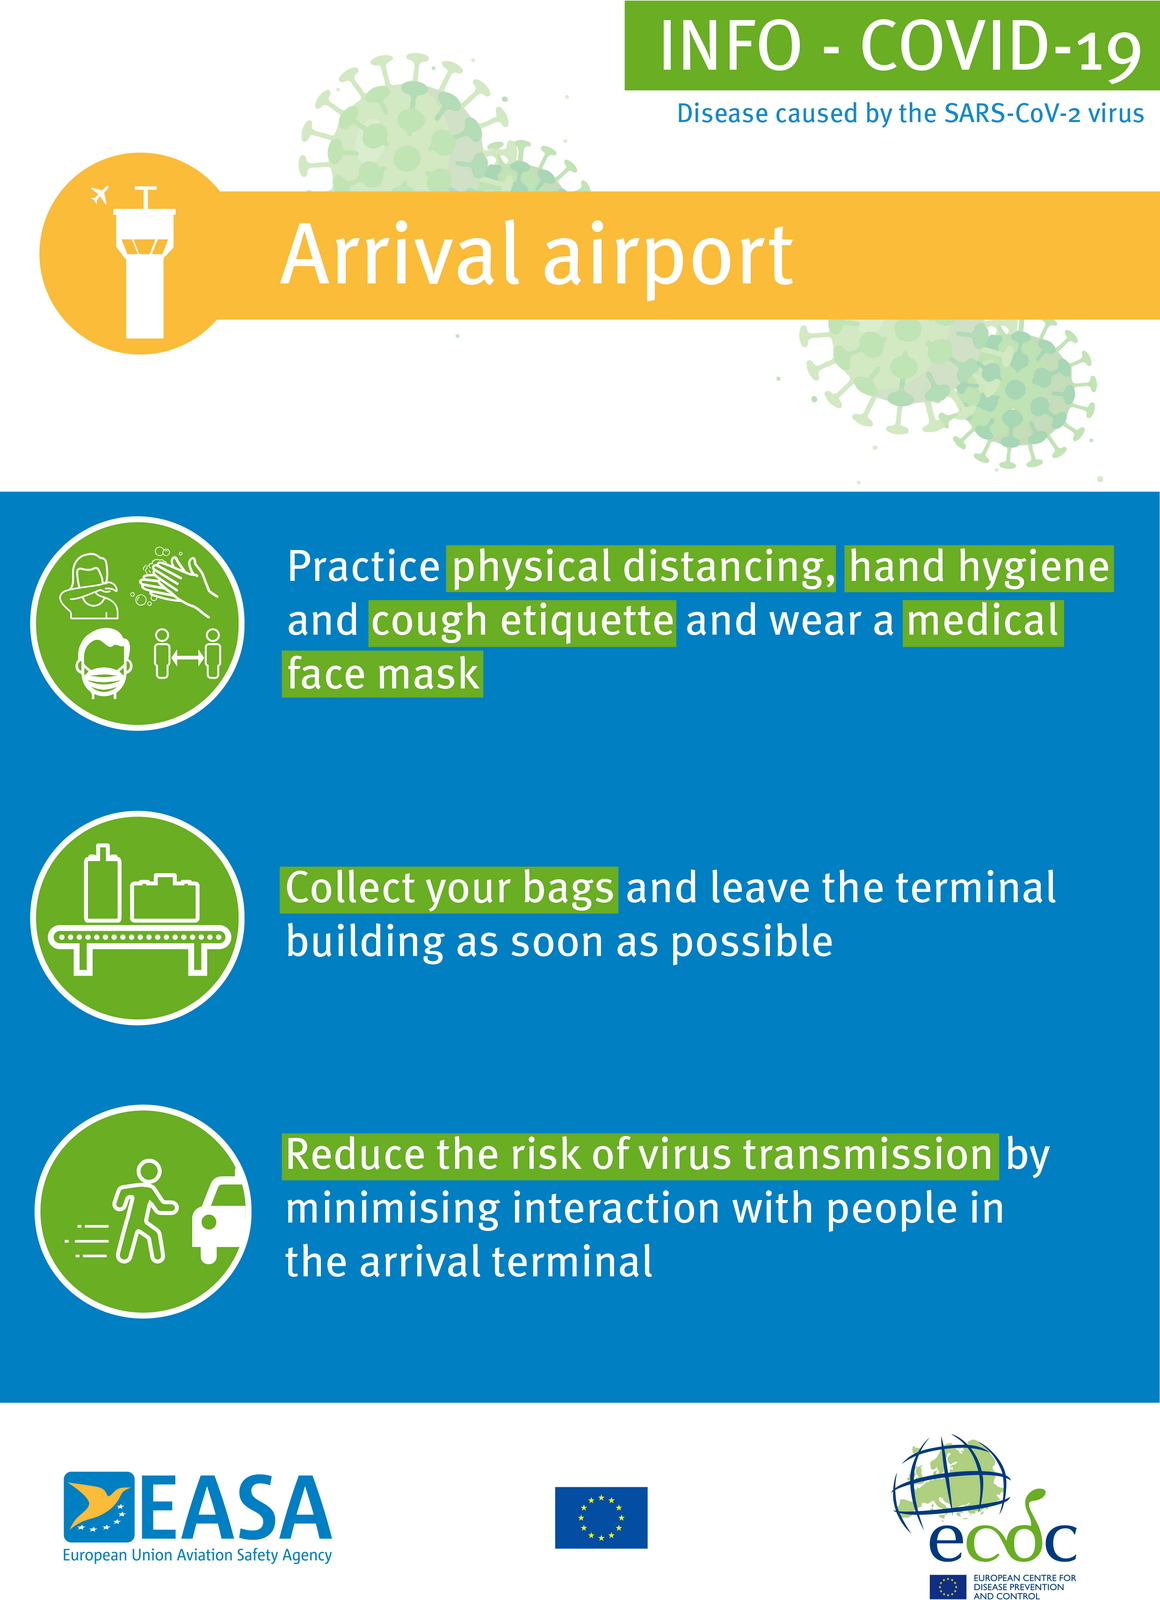 Poster: Arrival airport (blue background)